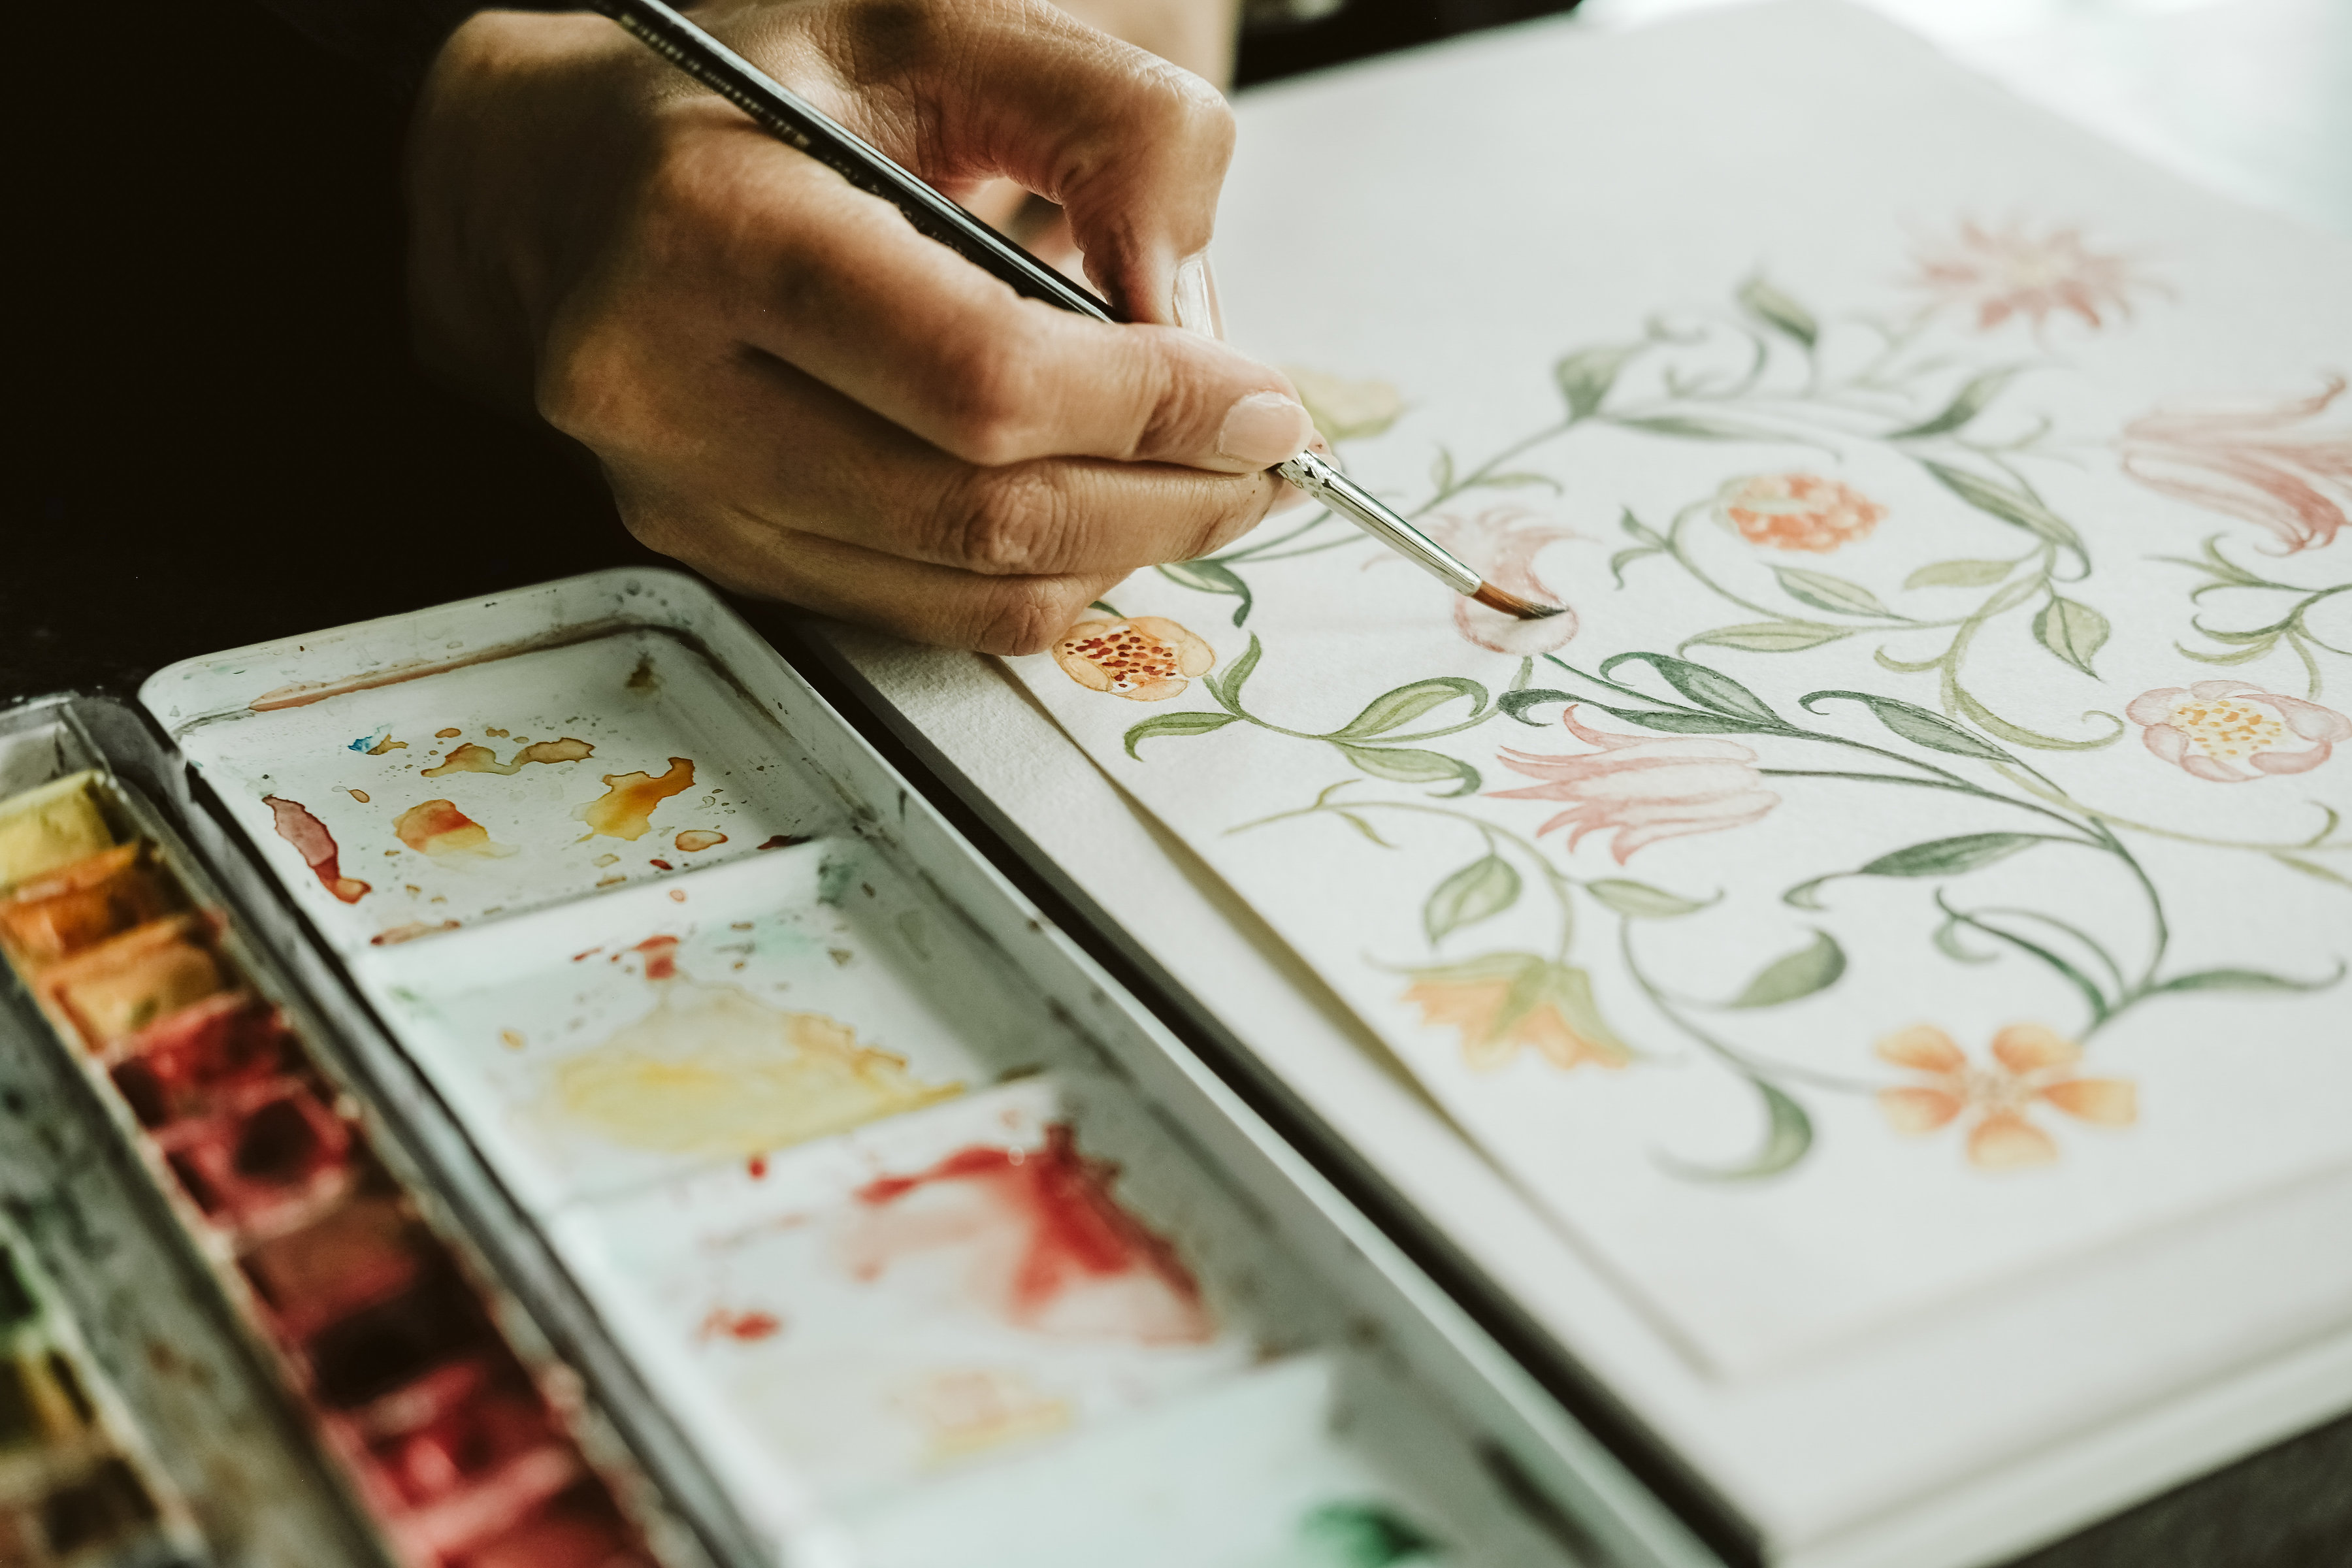 Illustrated Wedding Invitations with a floral watercolour being illustrated